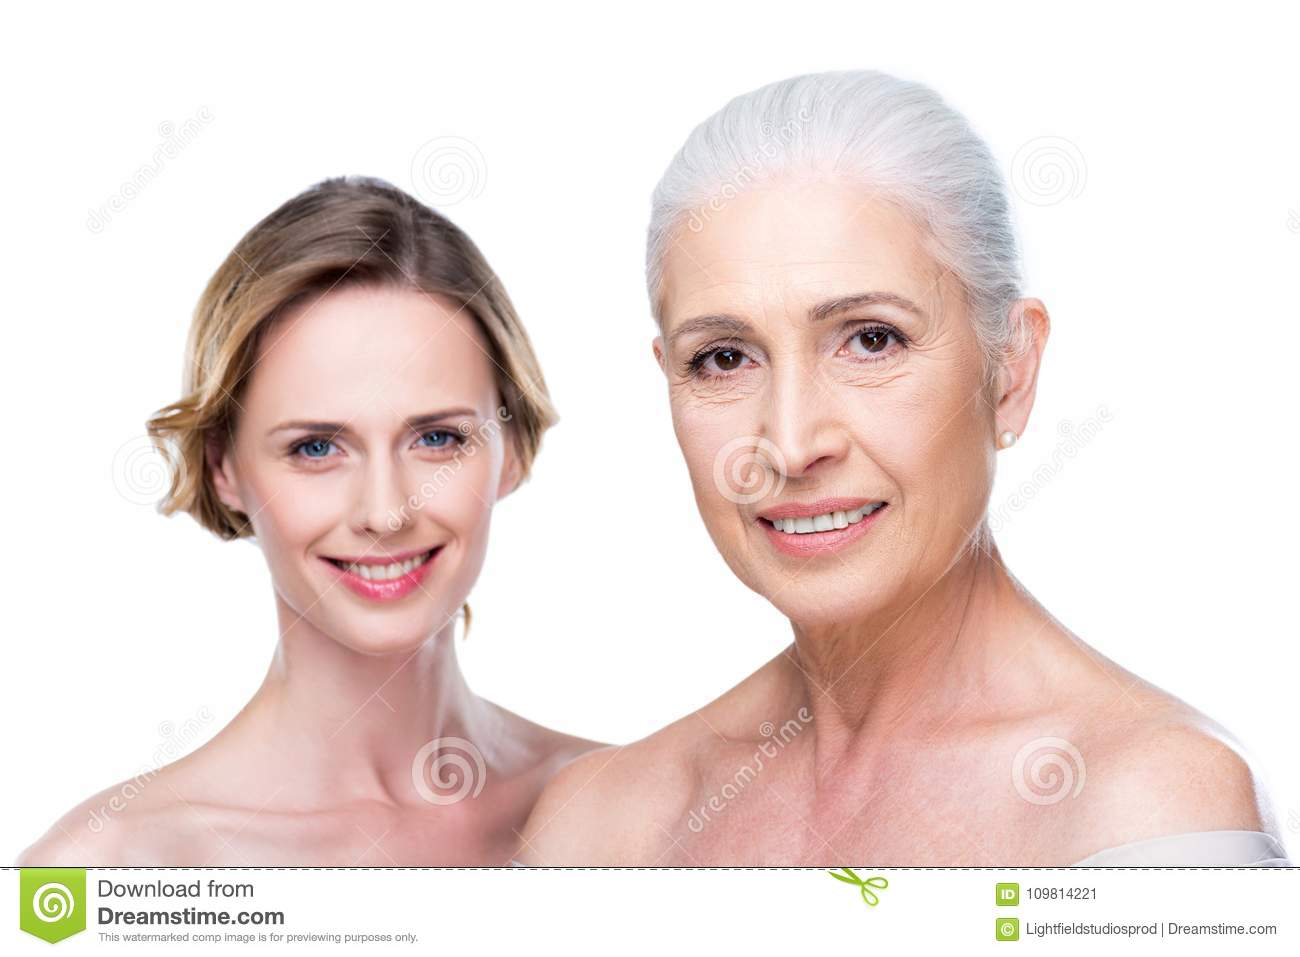 Naked Adult Daughter And Mother Stock Image - Image of